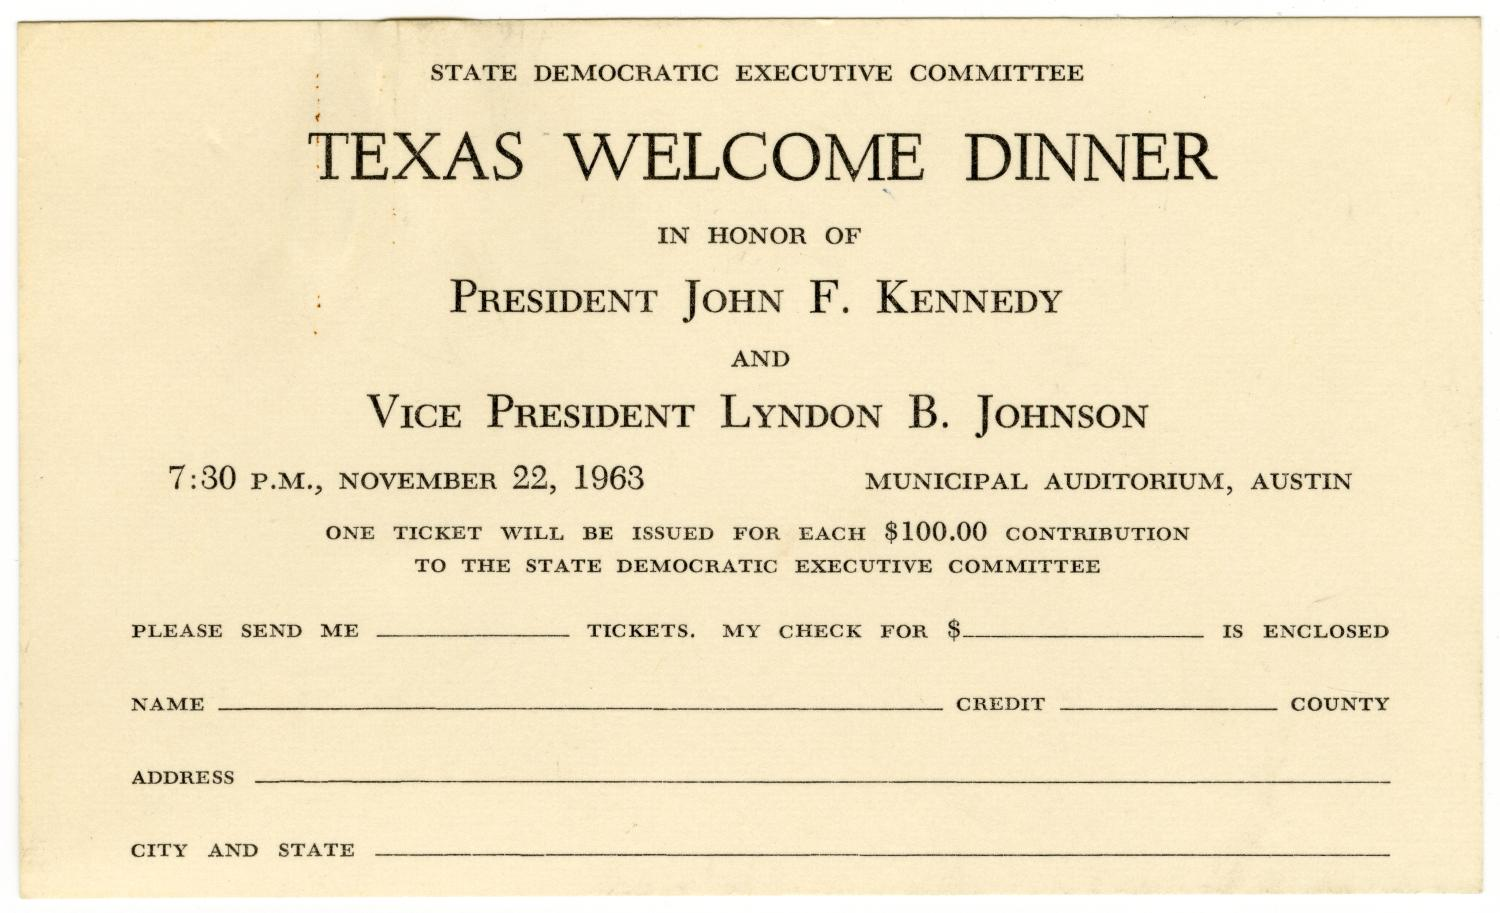 invitation card from the state democratic executive